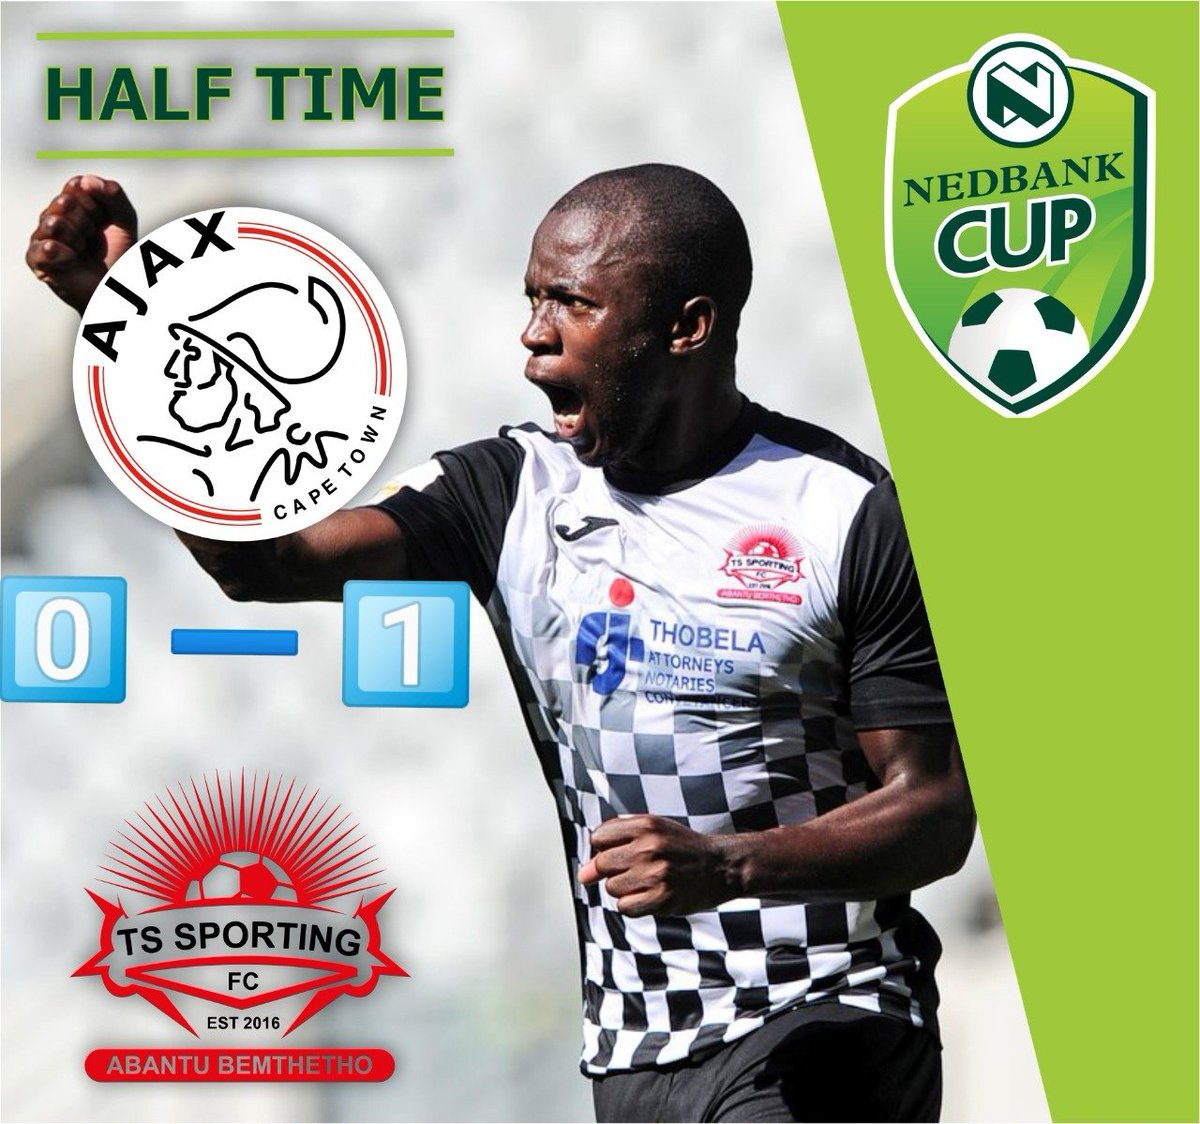 ts sporting fc on twitter 452 half time. we go to the